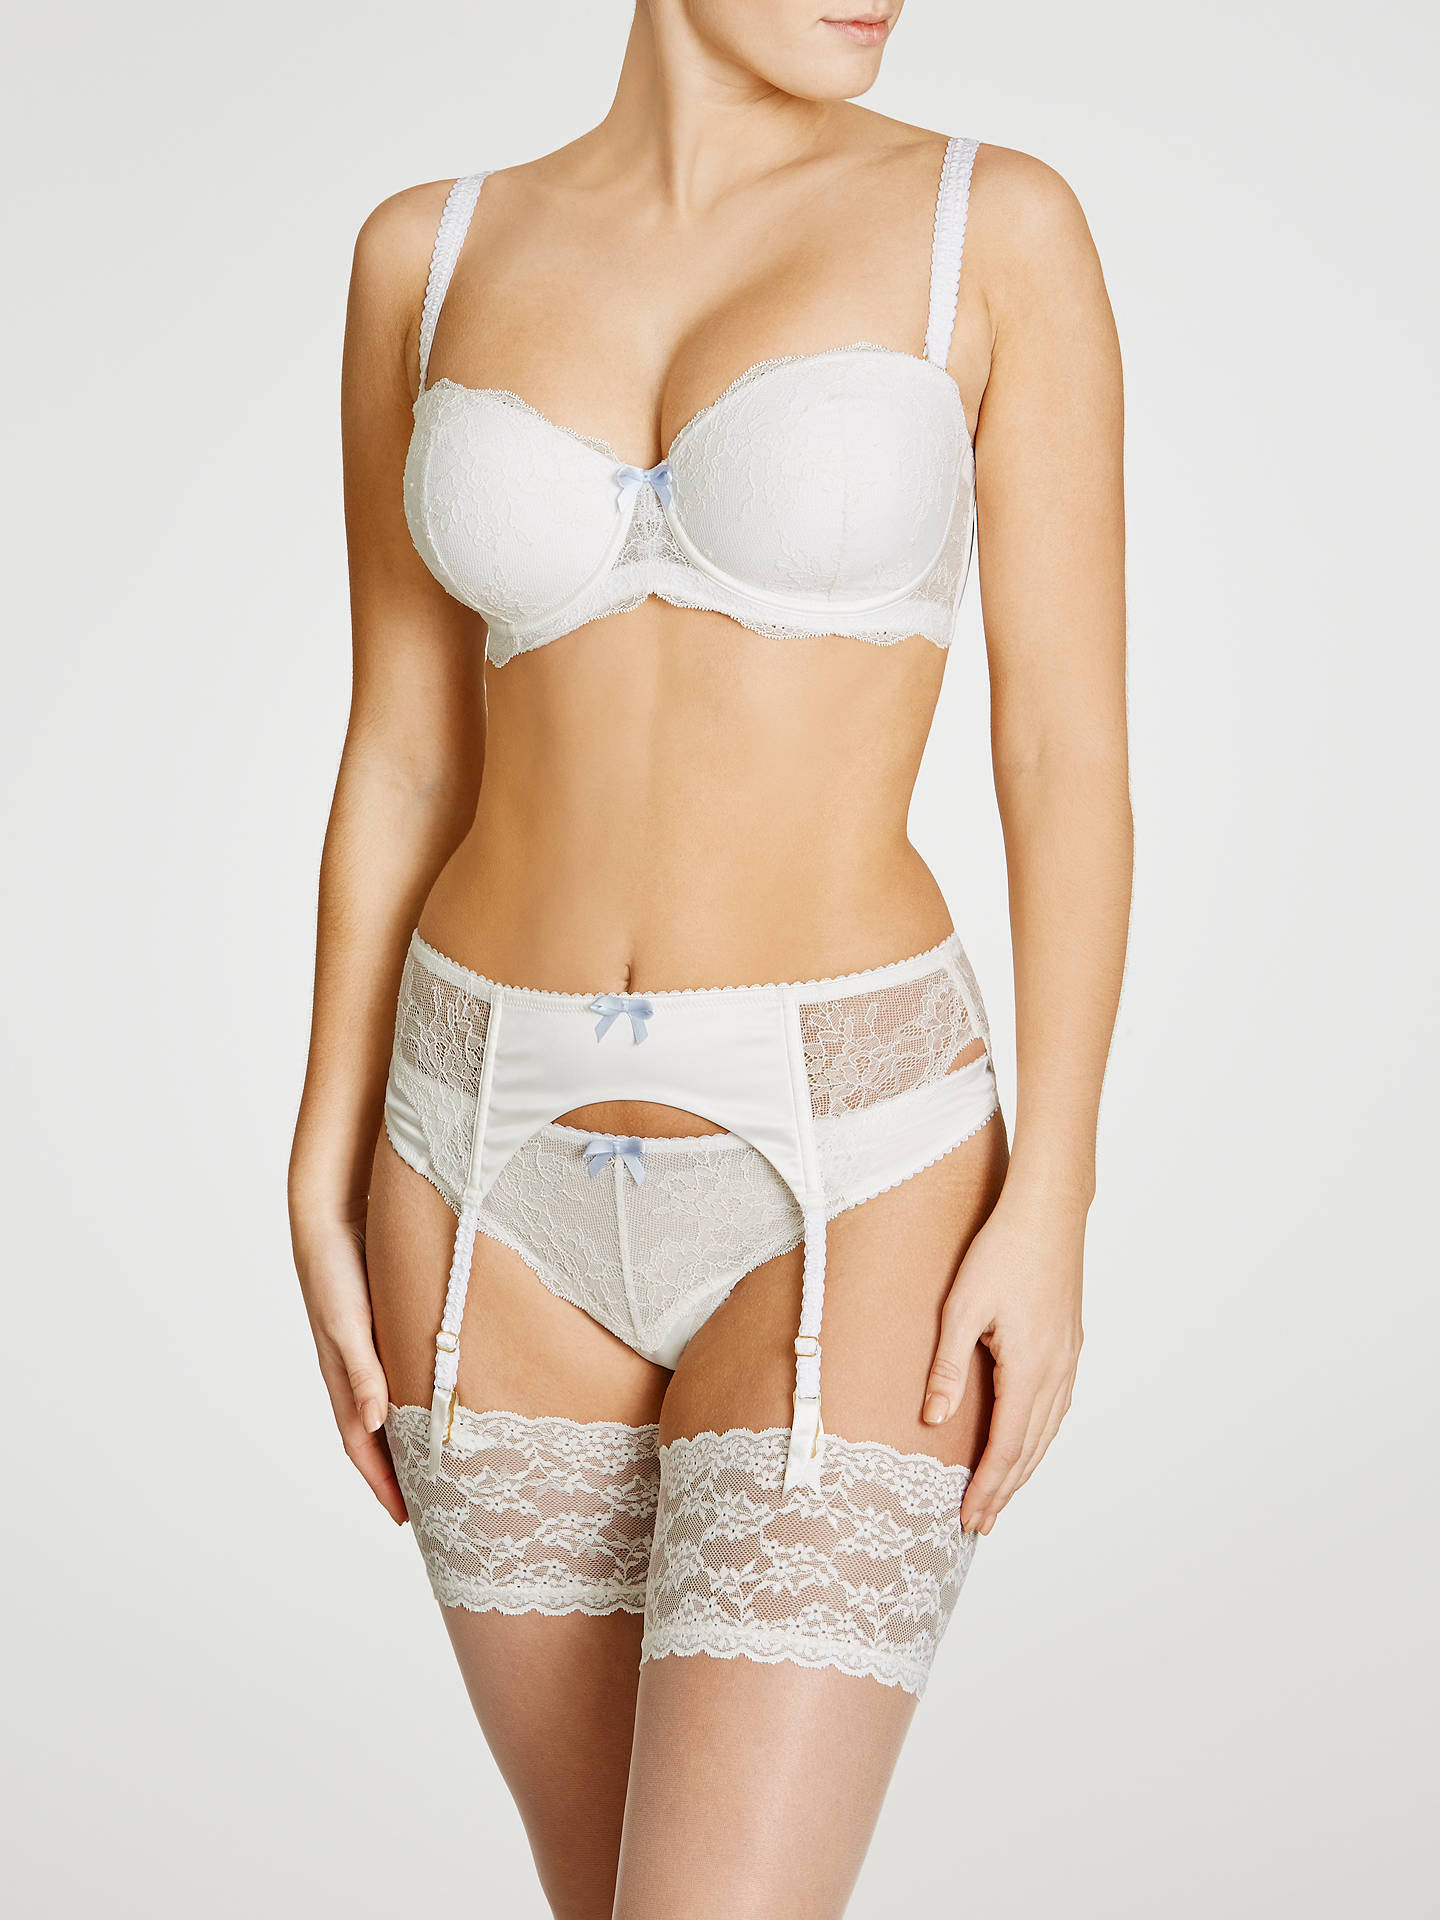 ab191f54f Buy COLLECTION by John Lewis Lana Bridal Suspender Belt